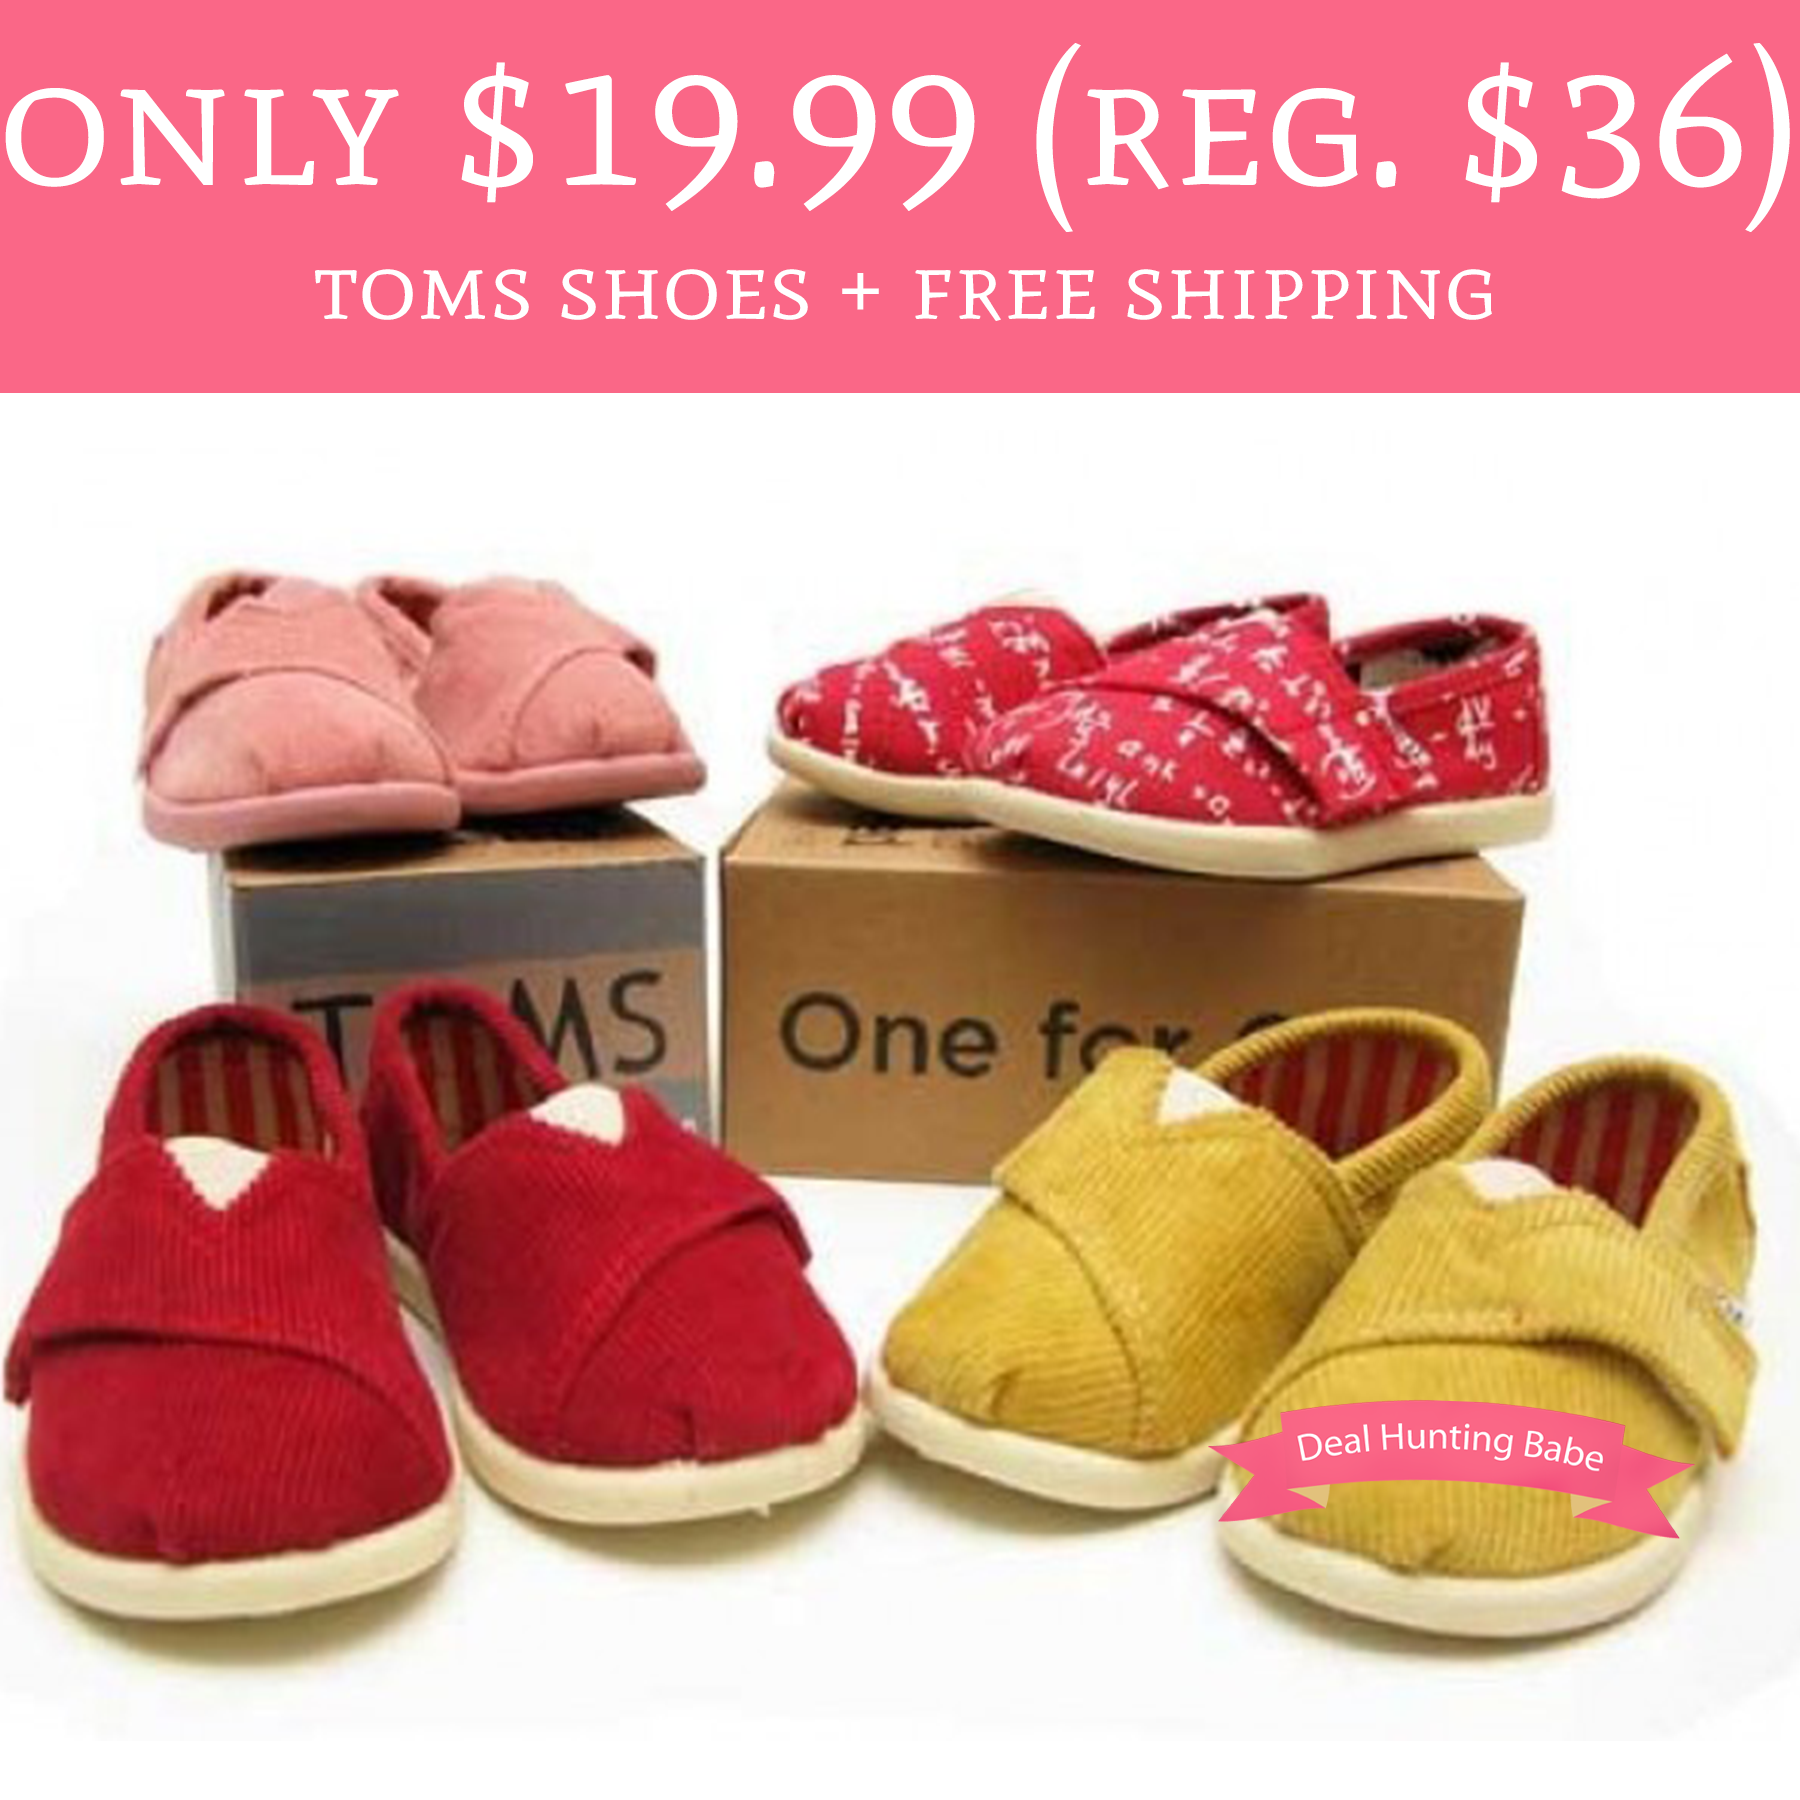 TOMS coupon codes are rare, but may occasionally pop up for free shipping, extra discounts on sale items, or site wide discounts. You can definitely expect big 85%().